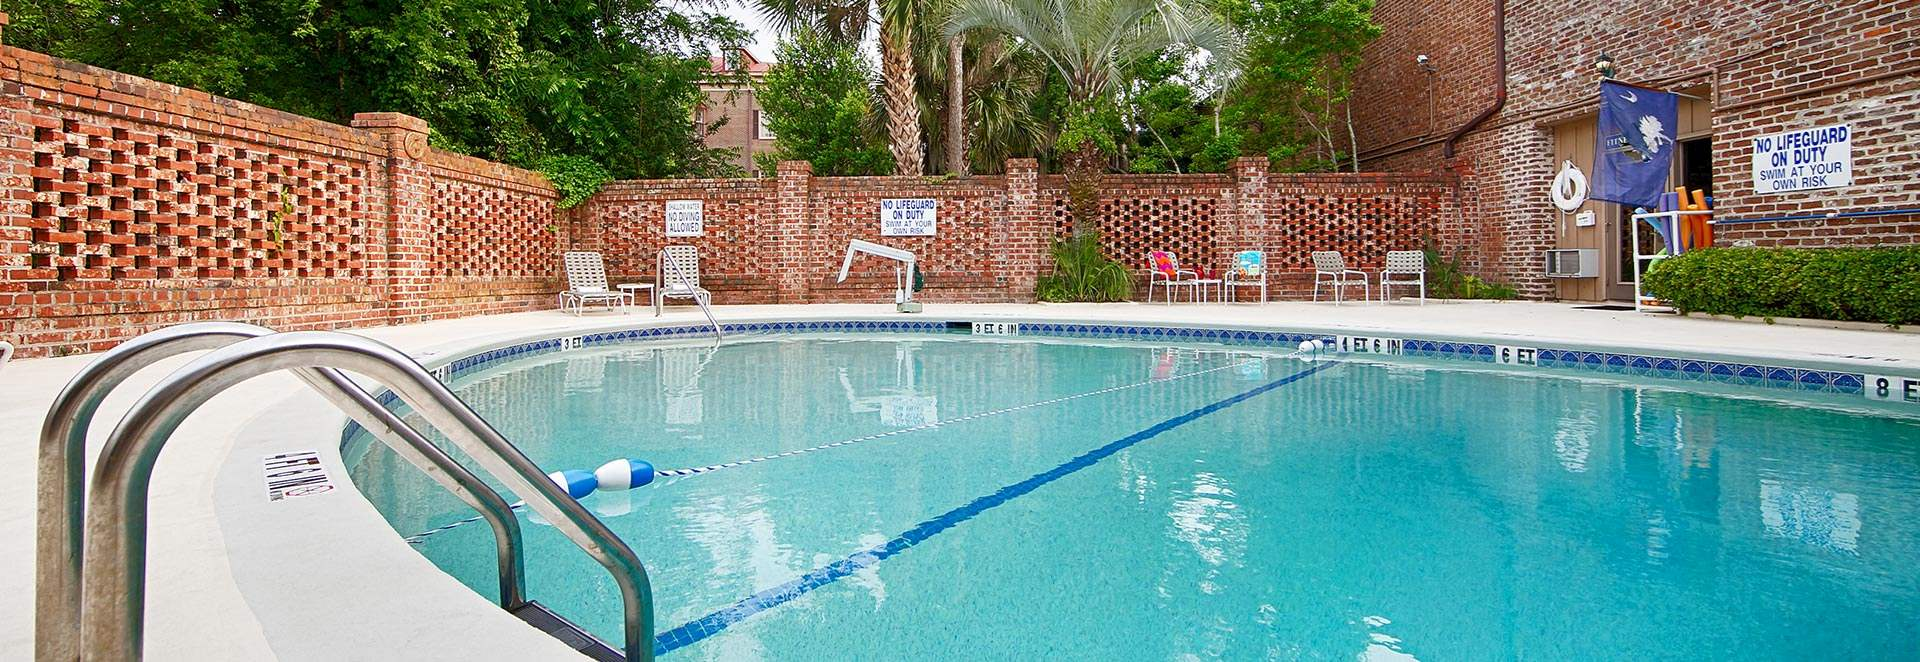 Best Western Sea Island Inn, Beaufort, South Carolina